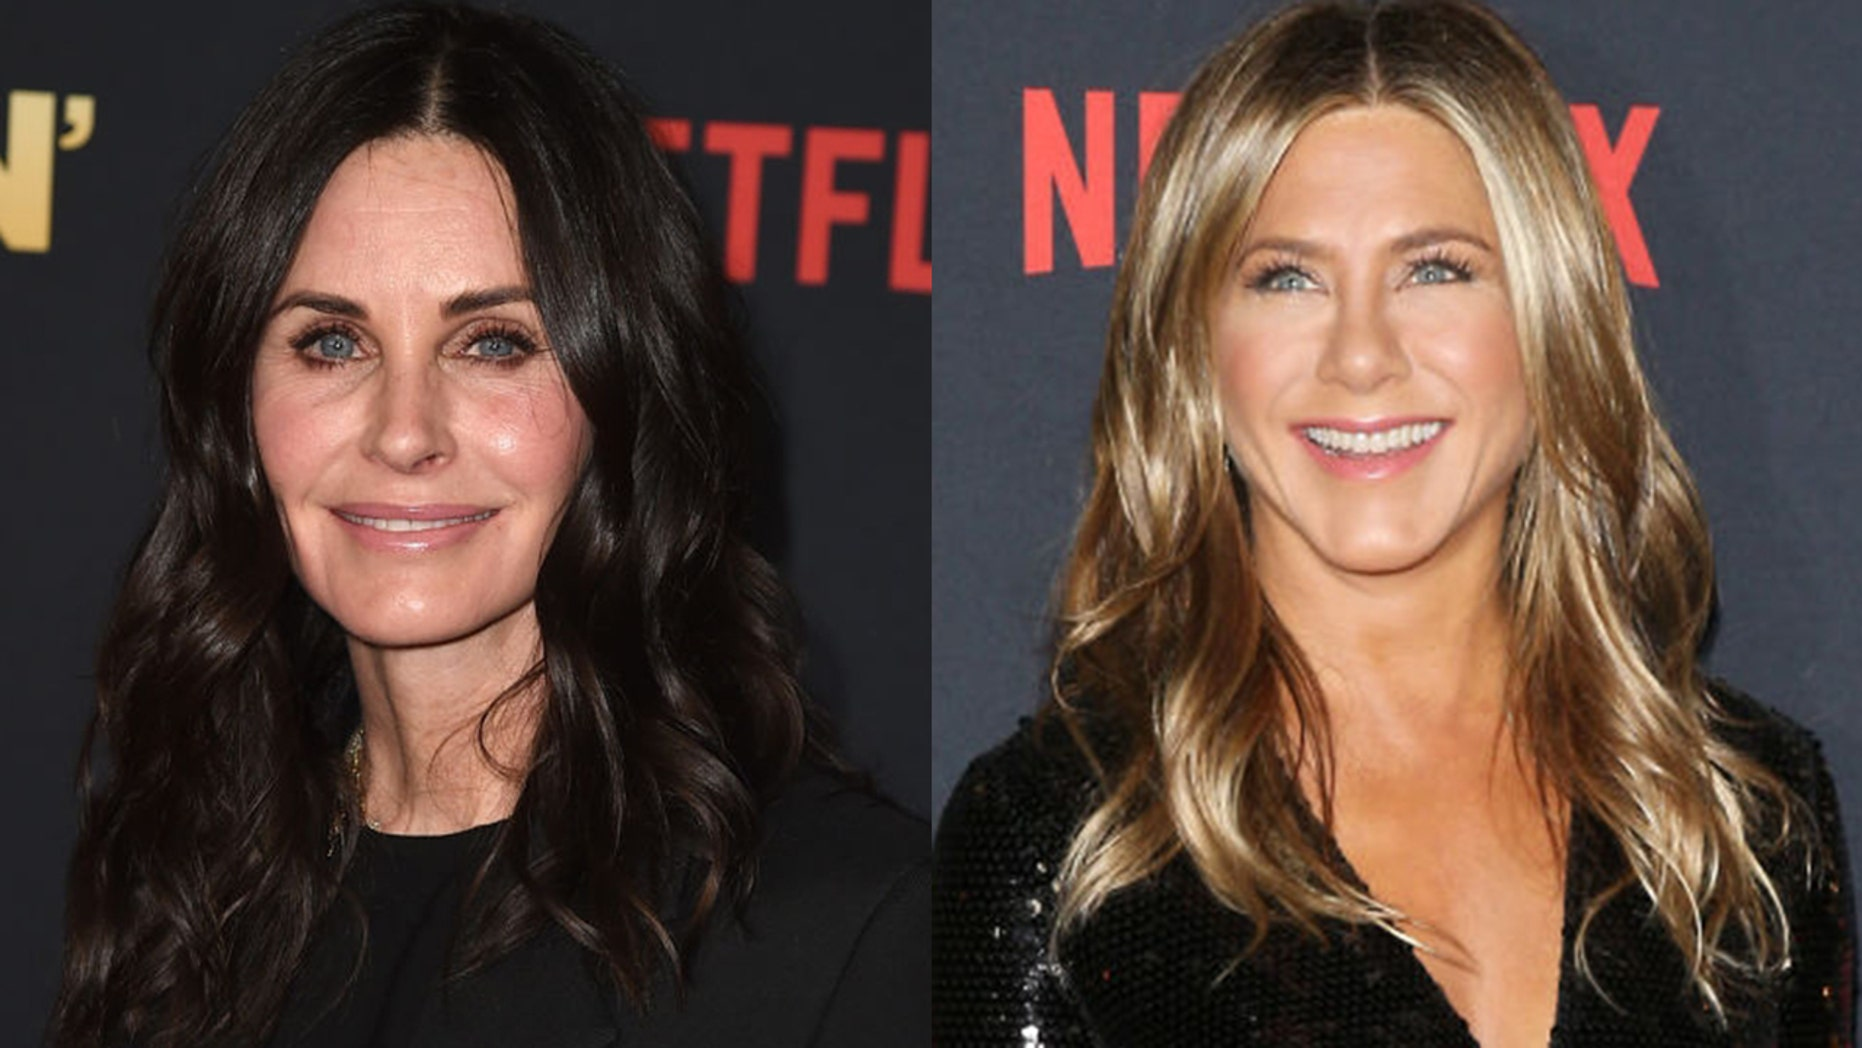 A private jet carrying Jennifer Aniston and Courteney Cox was forced to make an emergency landing last Friday.